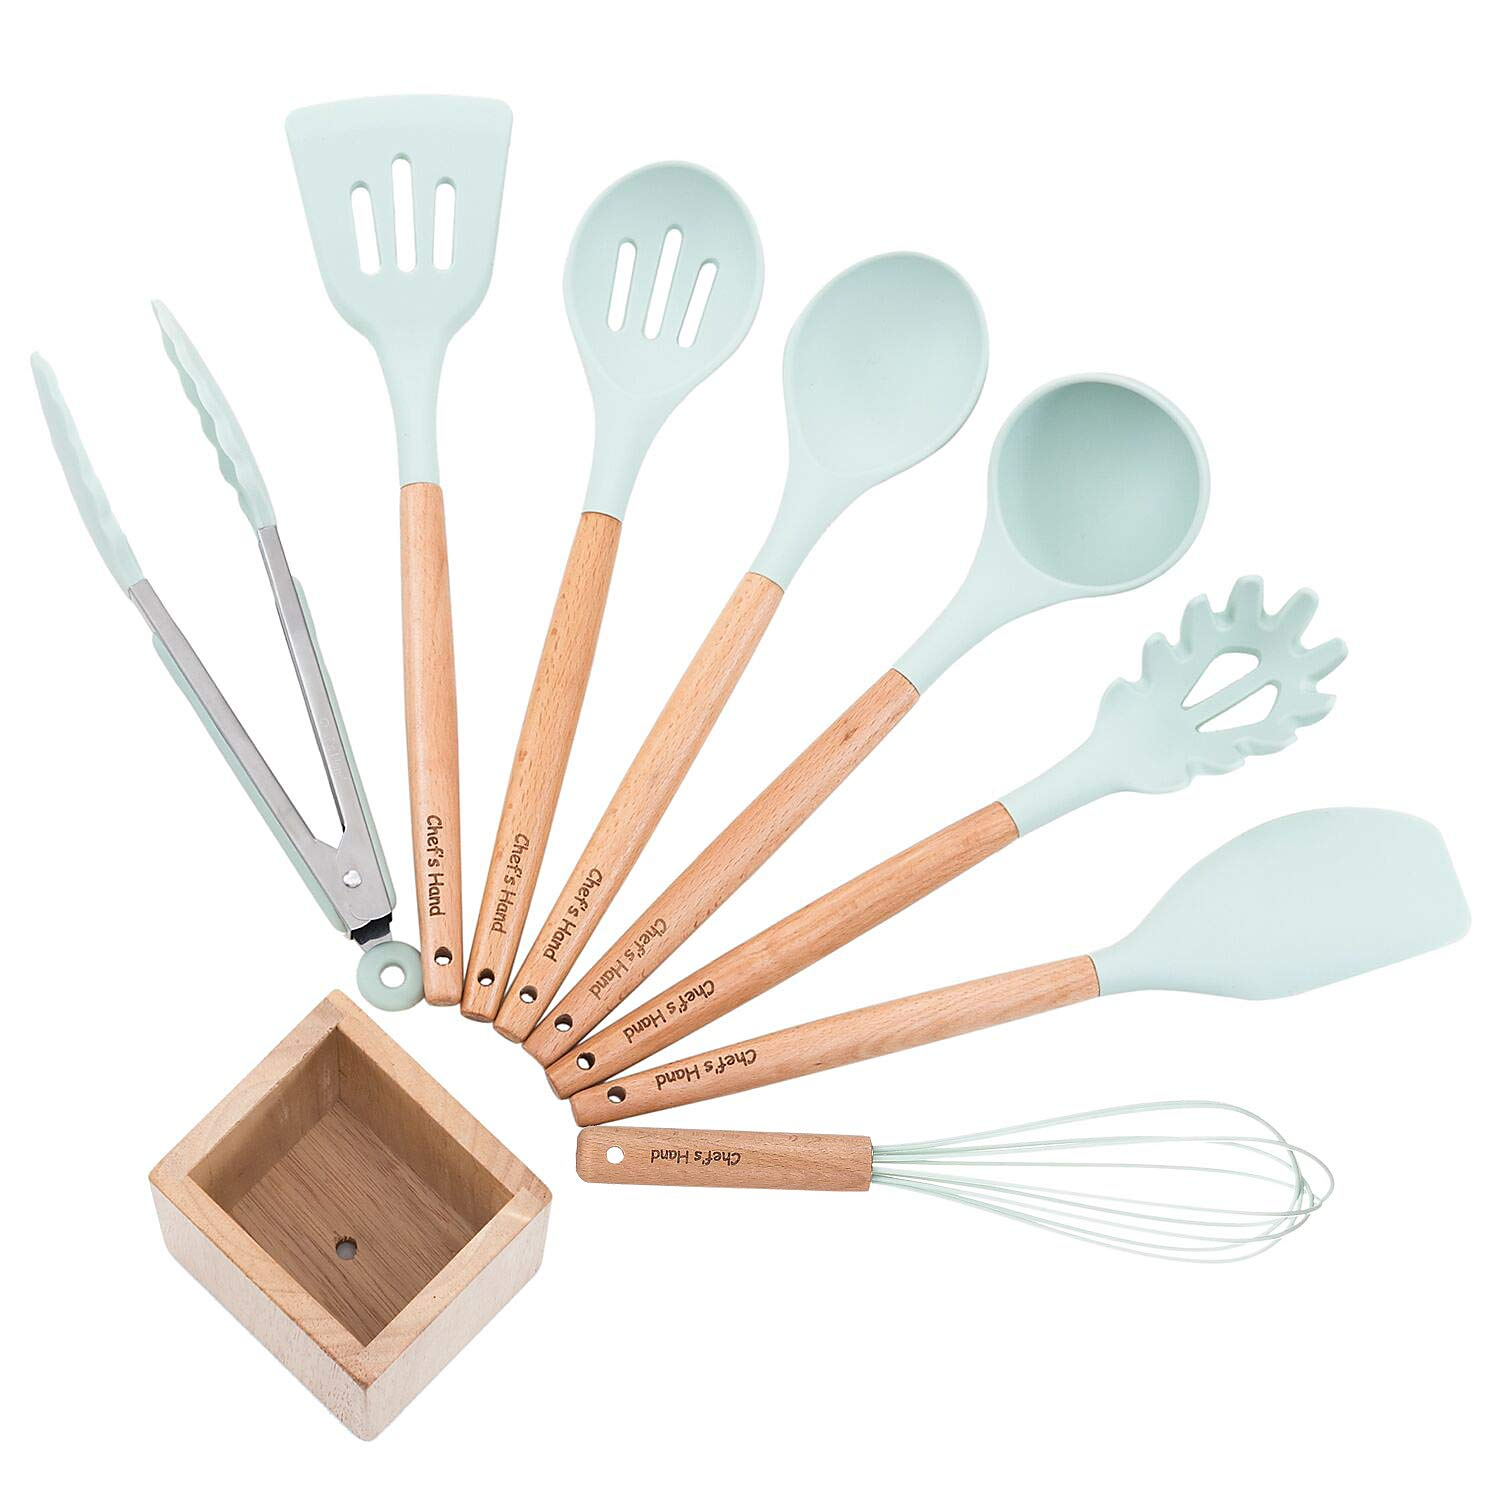 Kitchen Utensil Set Silicone Cooking Utensils 9Piece - Cooking Utensils Set with Bamboo Wood Handles for Nonstick Cookware,BPA Free, Non Toxic Turner Tongs Spatula Spoon Set.-Chef